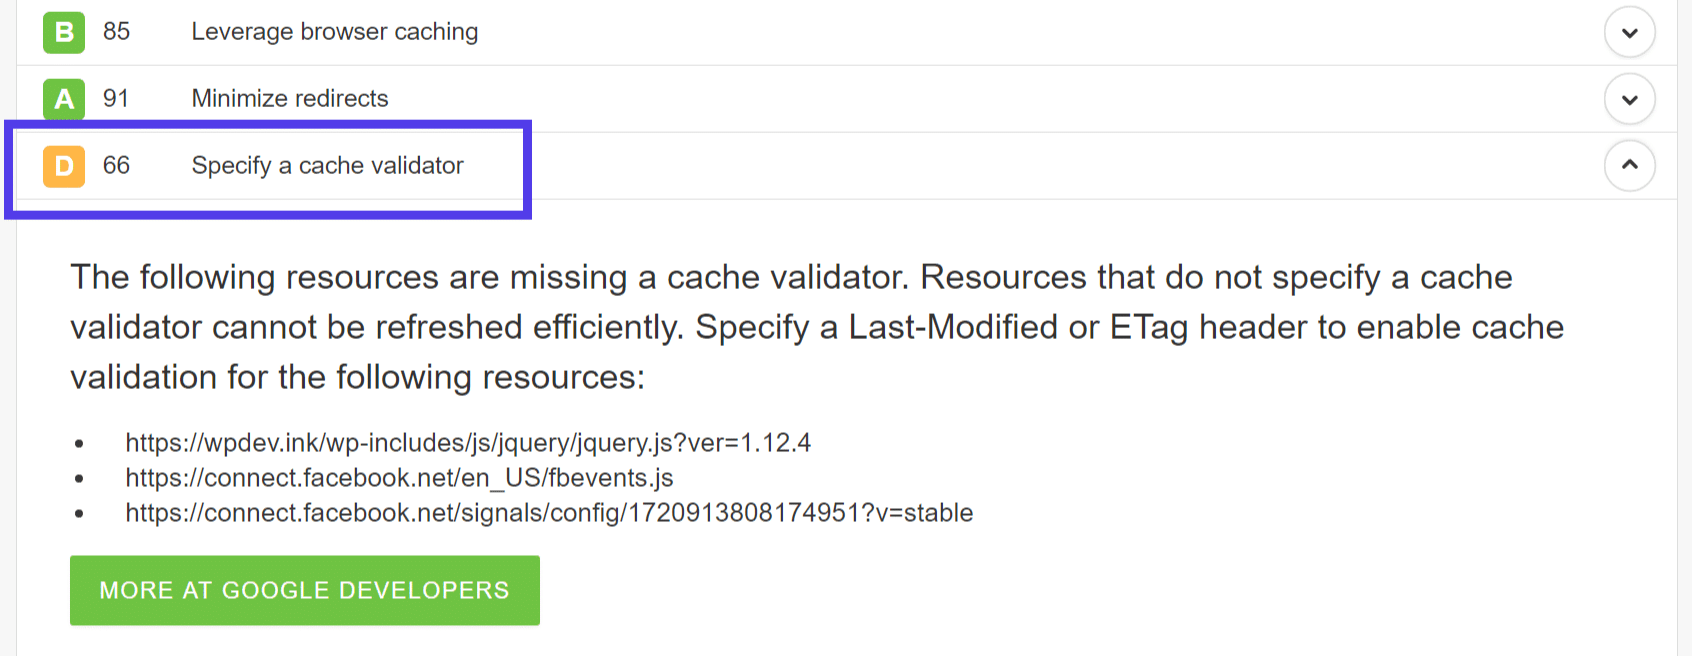 Specify a cache validator warning